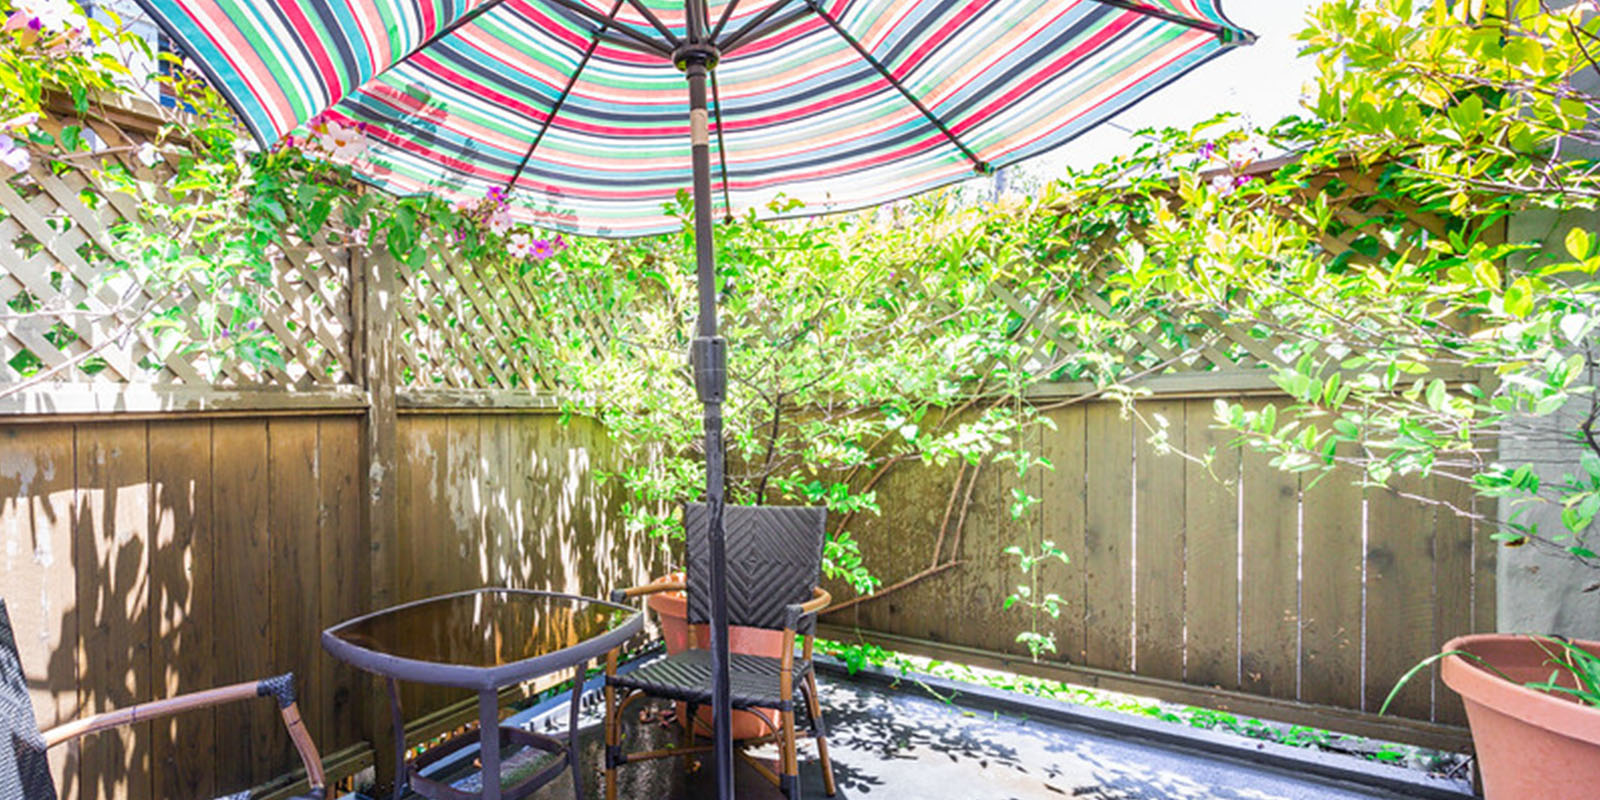 UNWIND AND ENJOY THE TRANQUIL SETTING OF A PRIVATE GARDEN PATIO